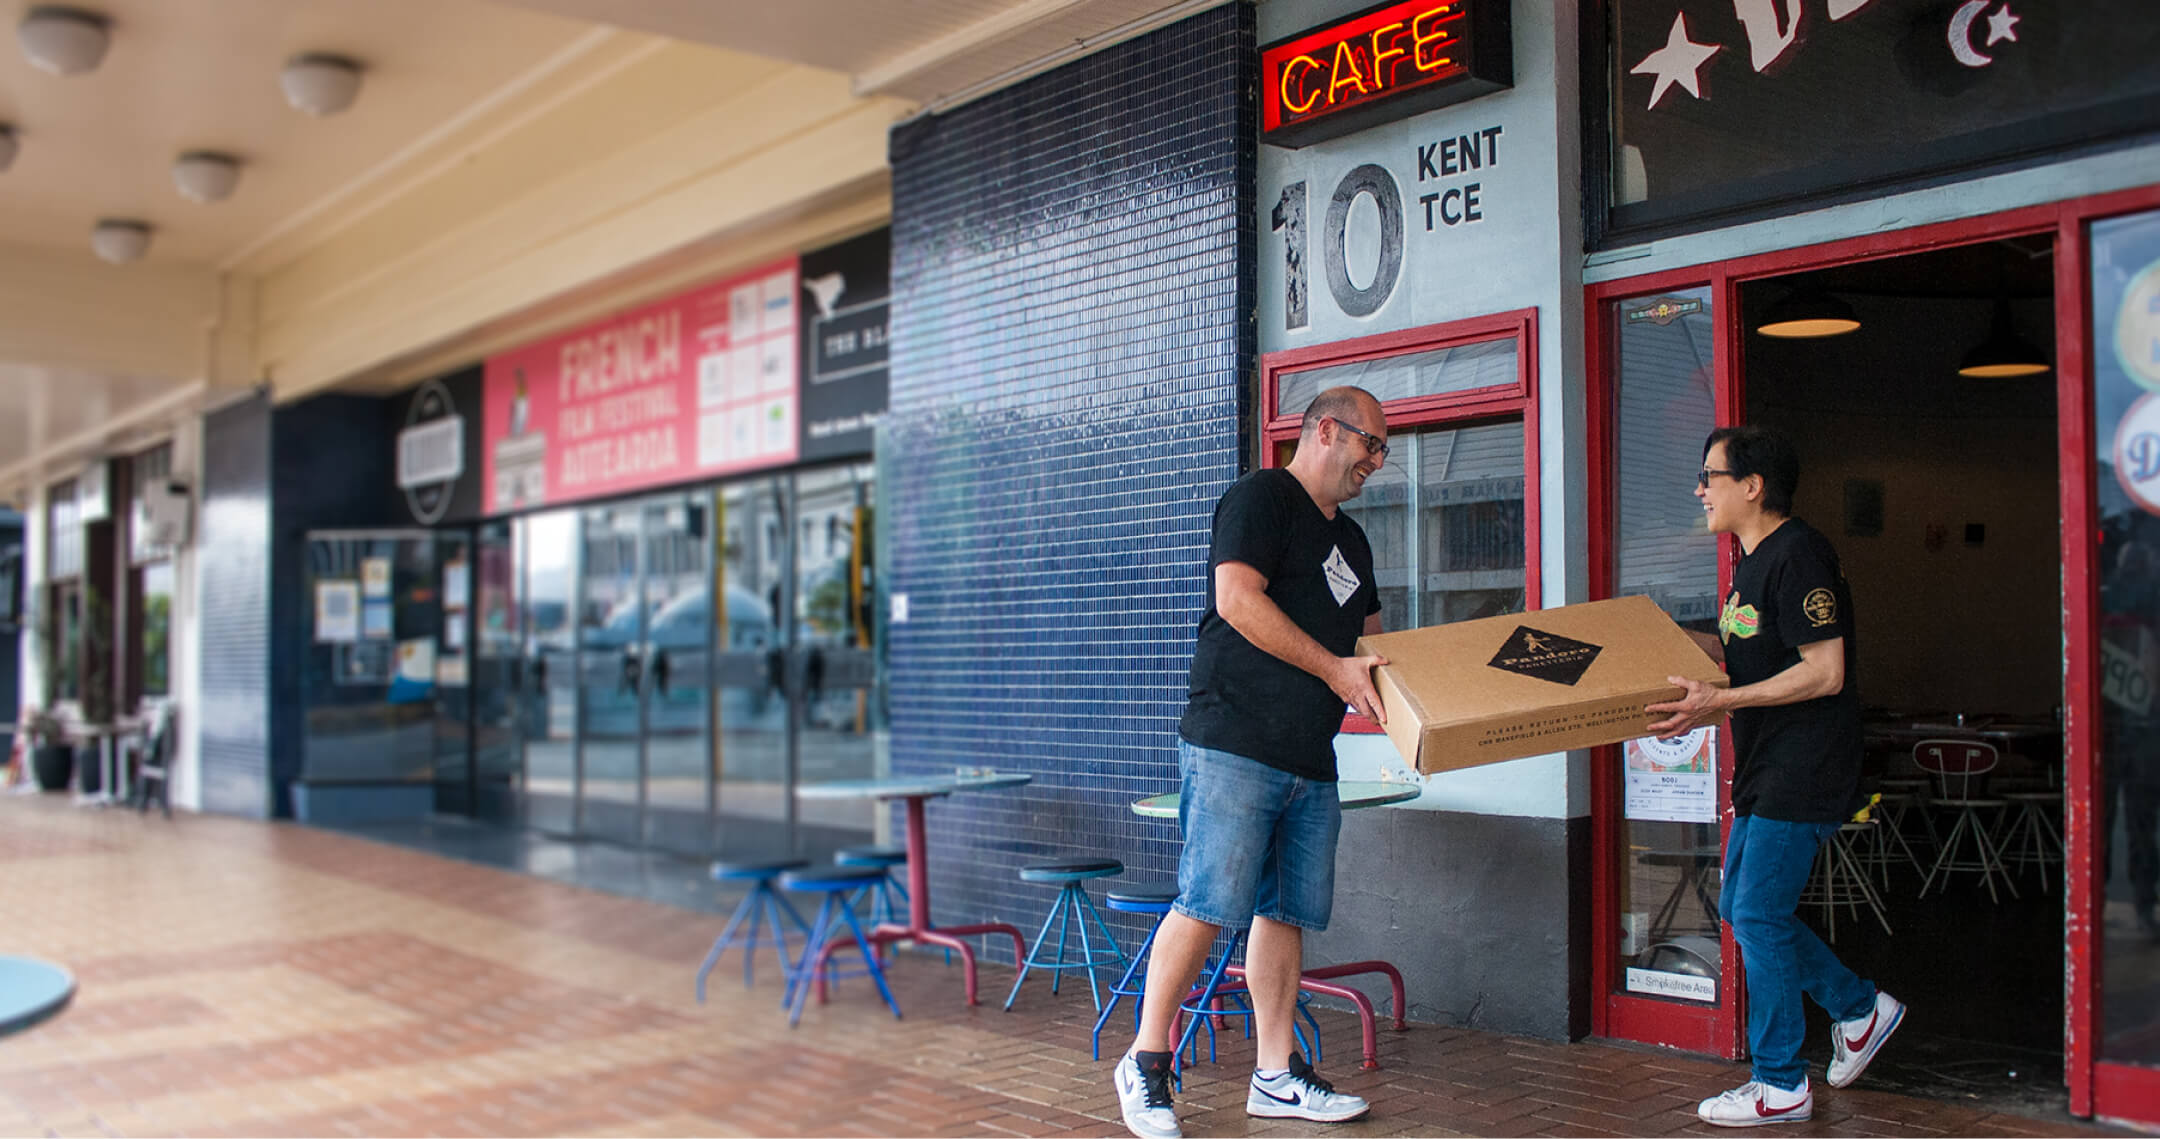 Neville from Pandoro Bakery delivers a box to Sam, the owner of Deluxe Cafe.